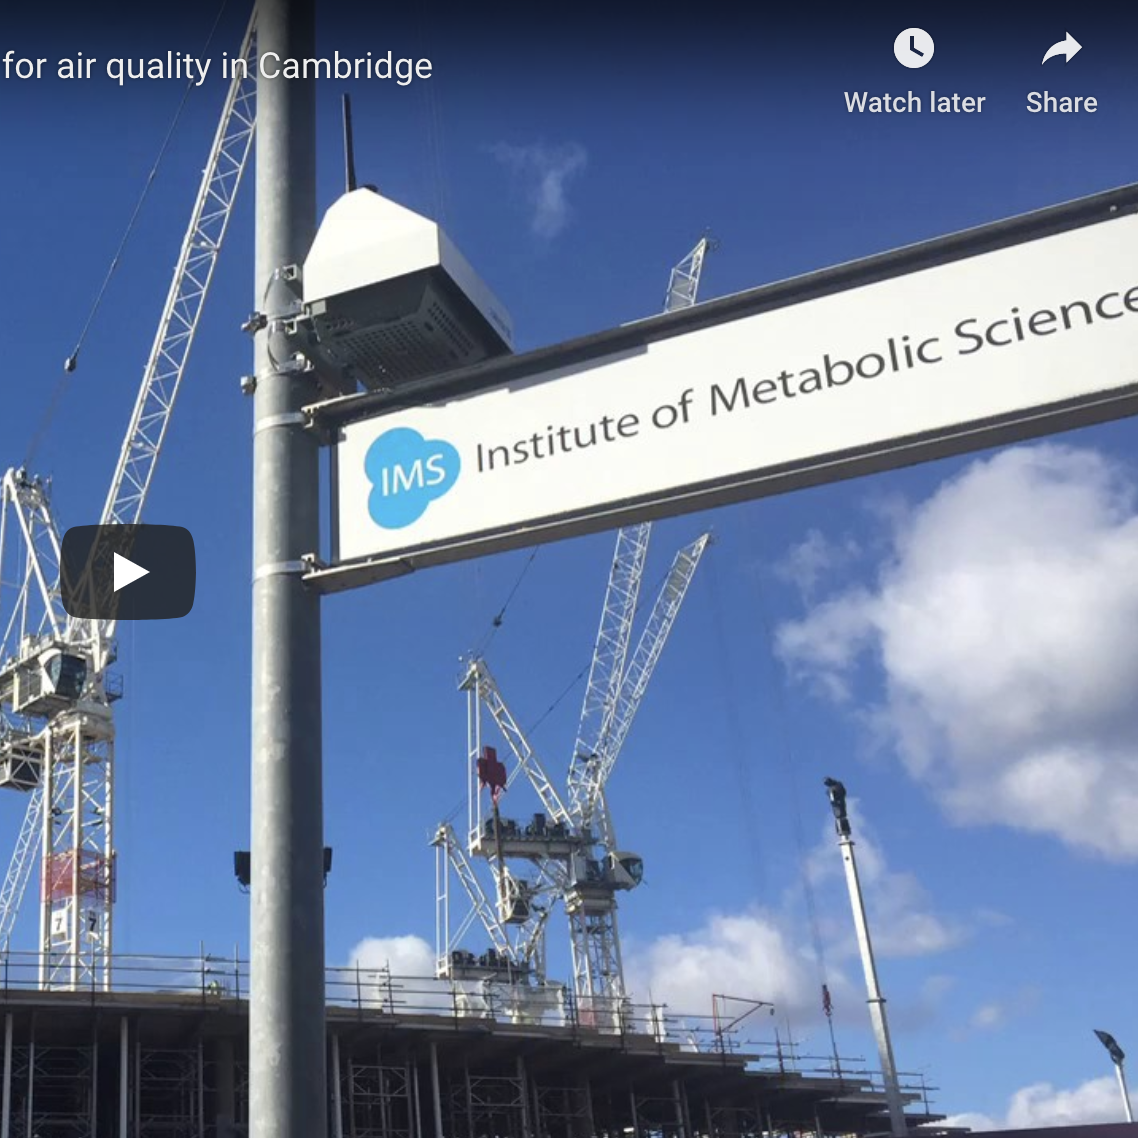 AQMesh demonstrates legitimacy of small sensors for air quality in Cambridge